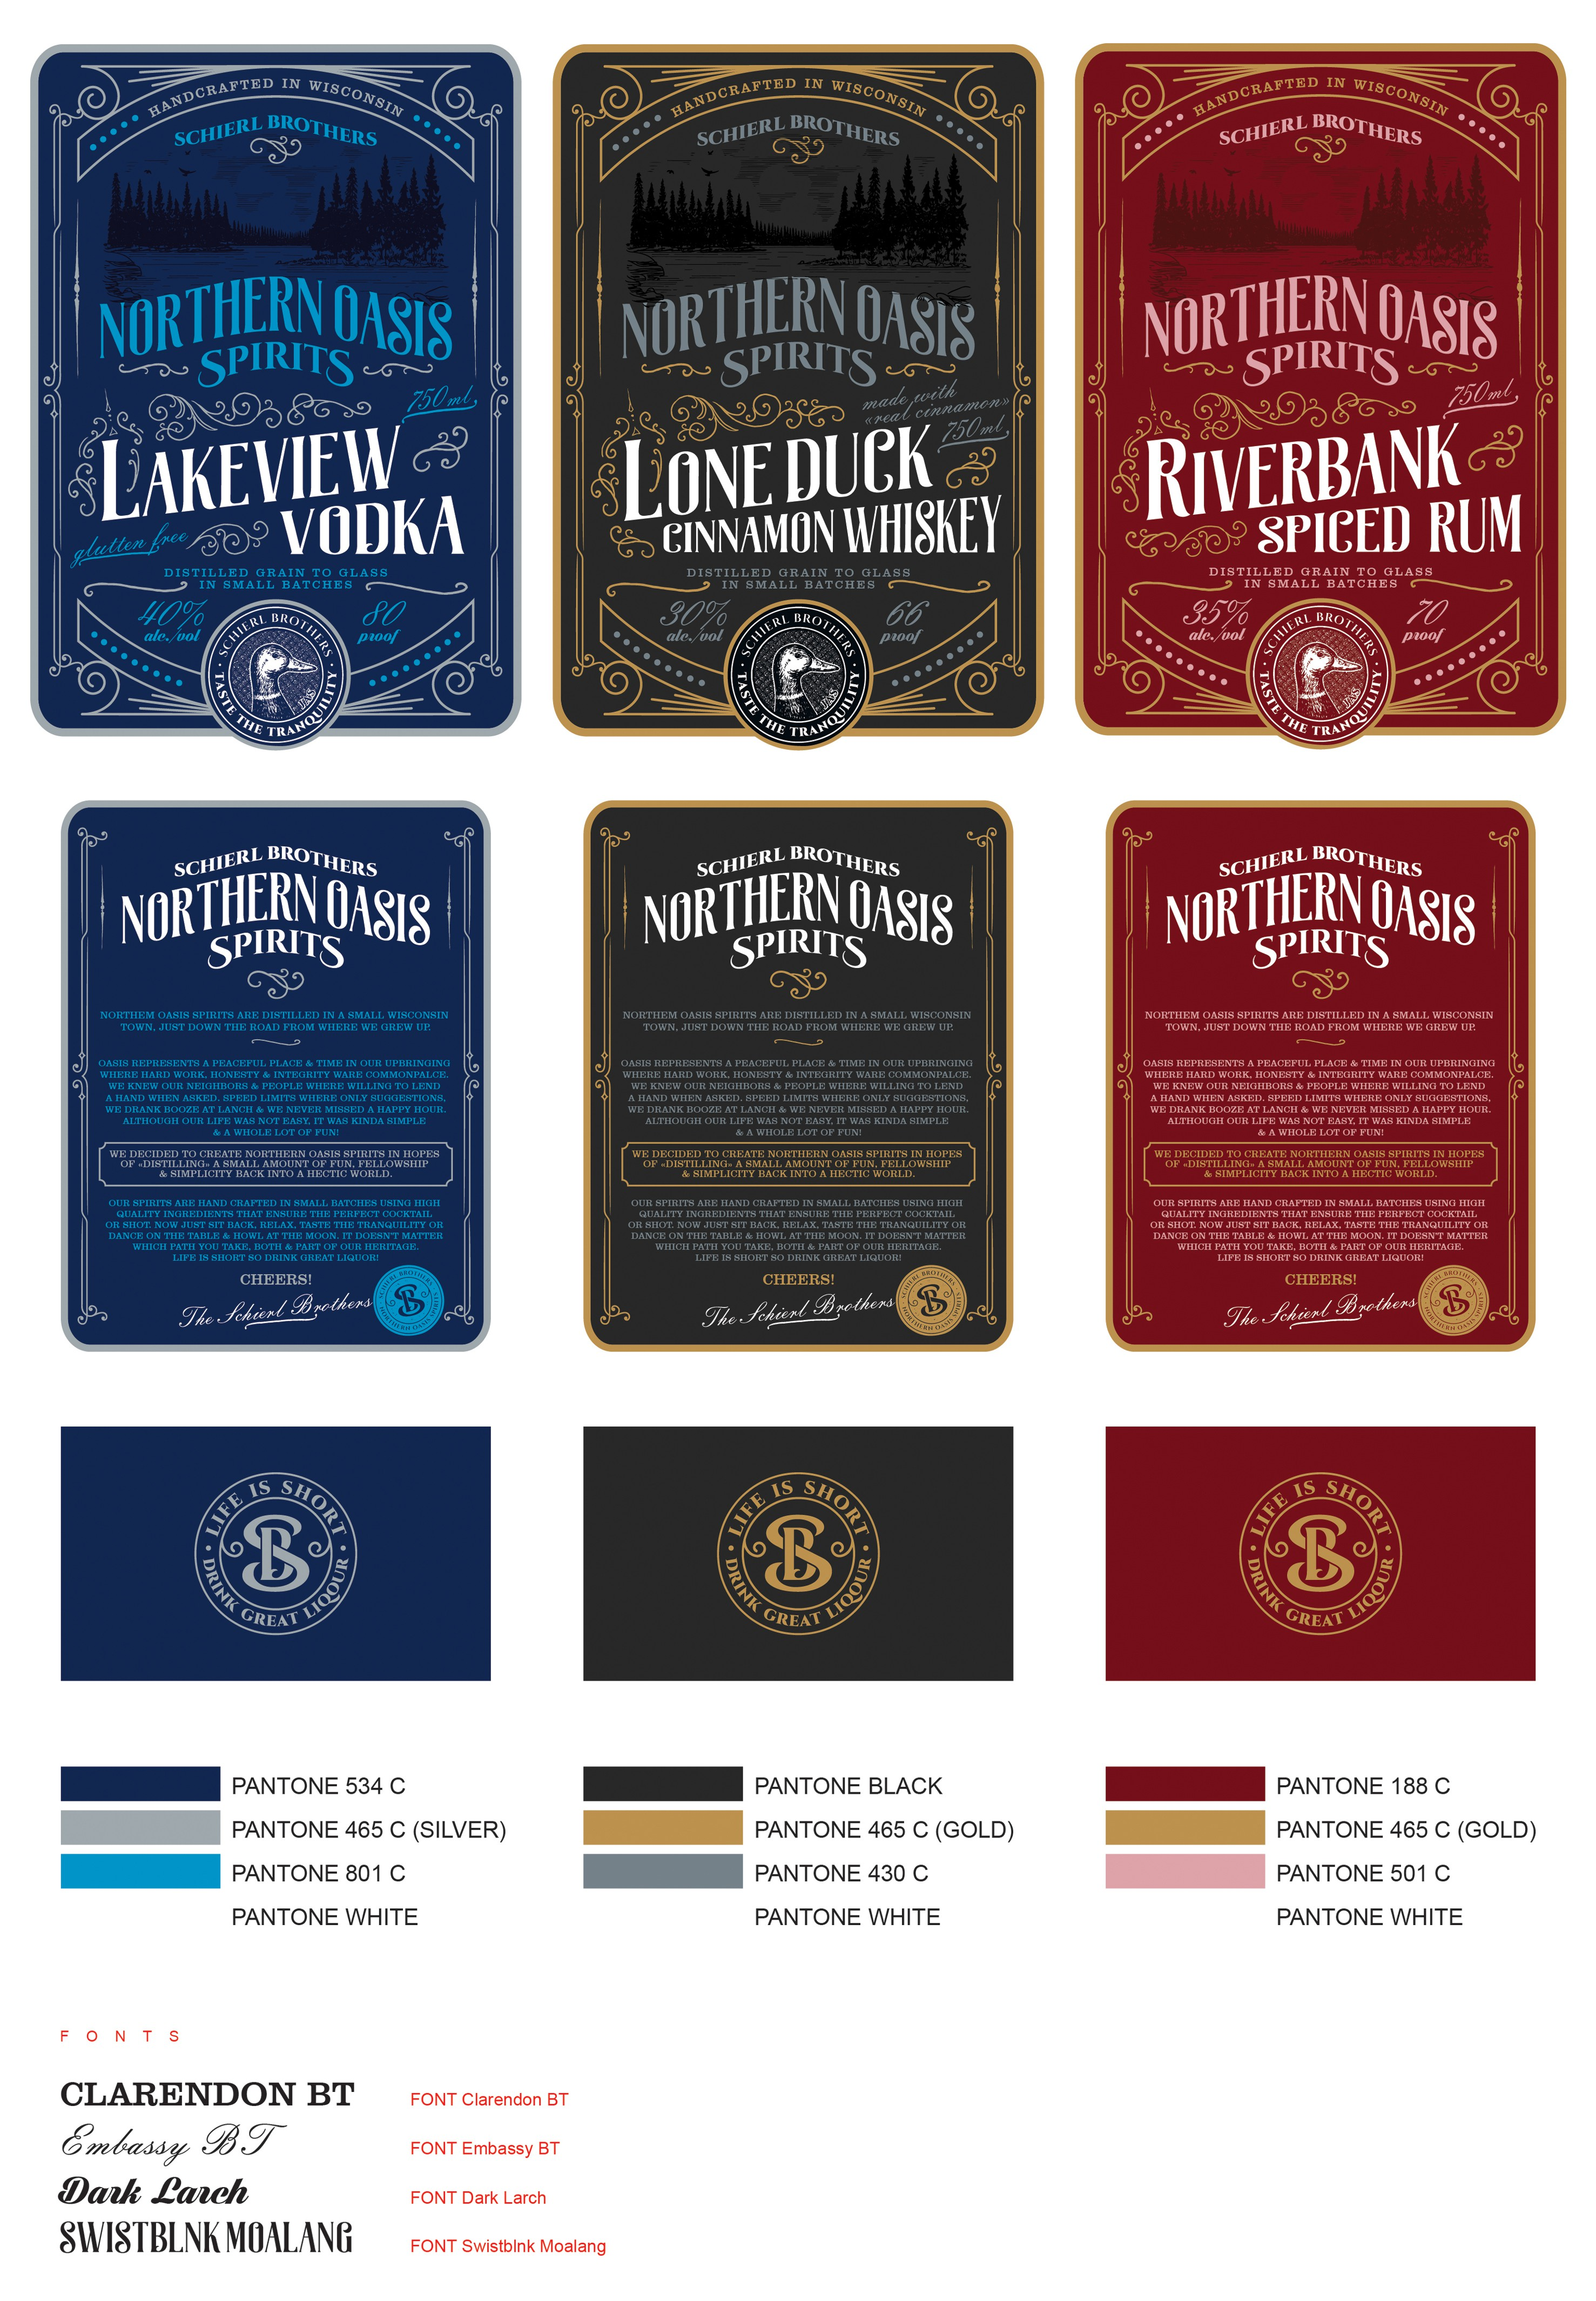 Label to launch a new liquor brand